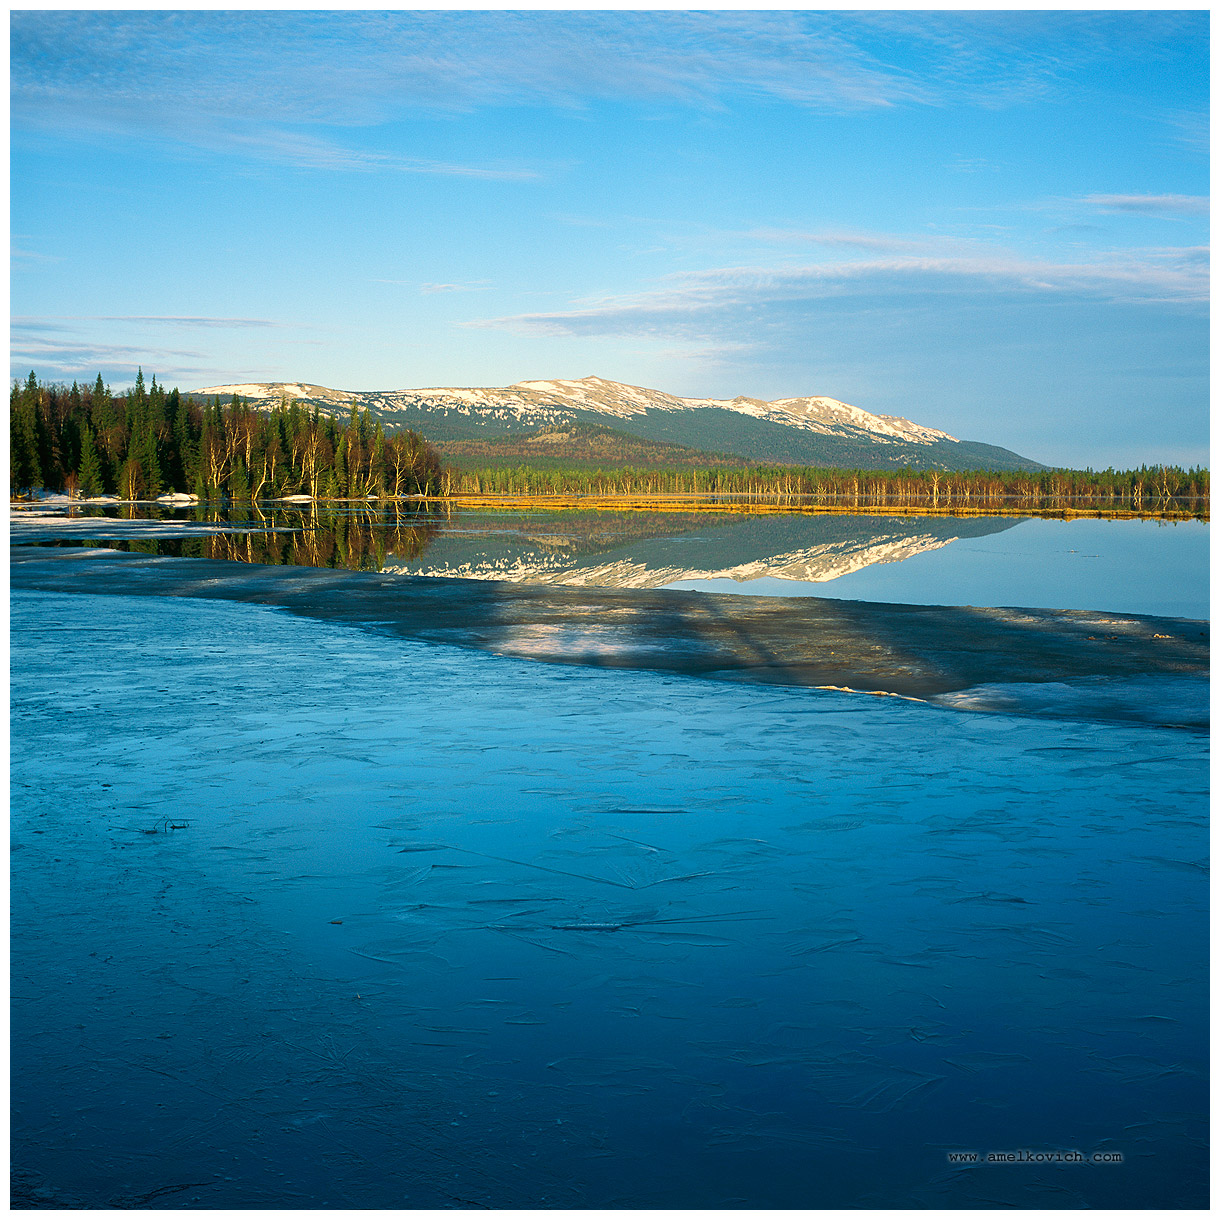 tuluk lake may author amelkovich igor